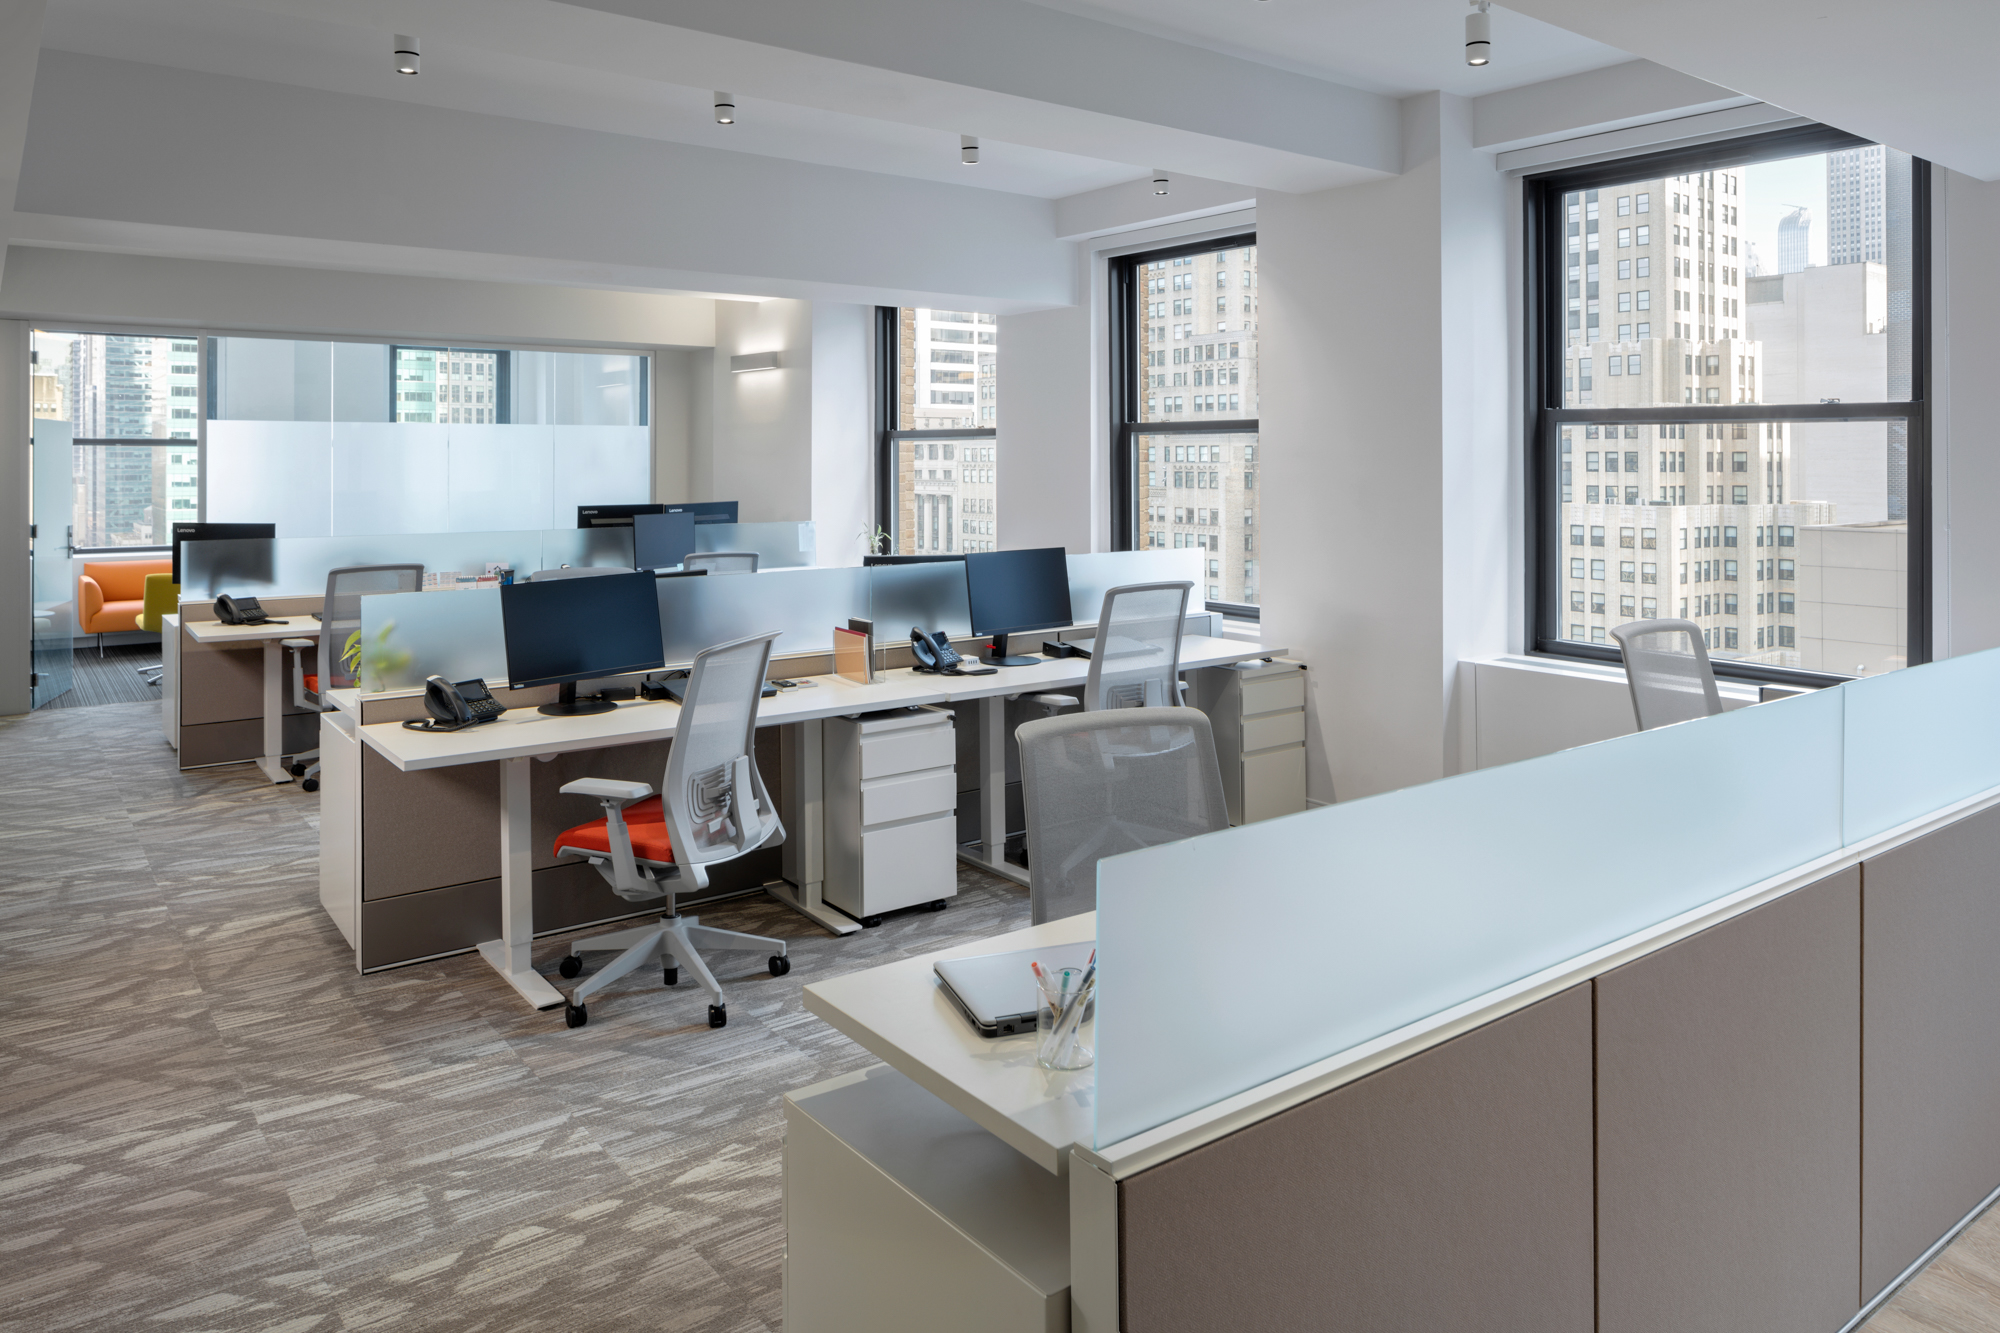 The open space encourages communication. Sit-stand desks & ergonomic chairs help people's health.